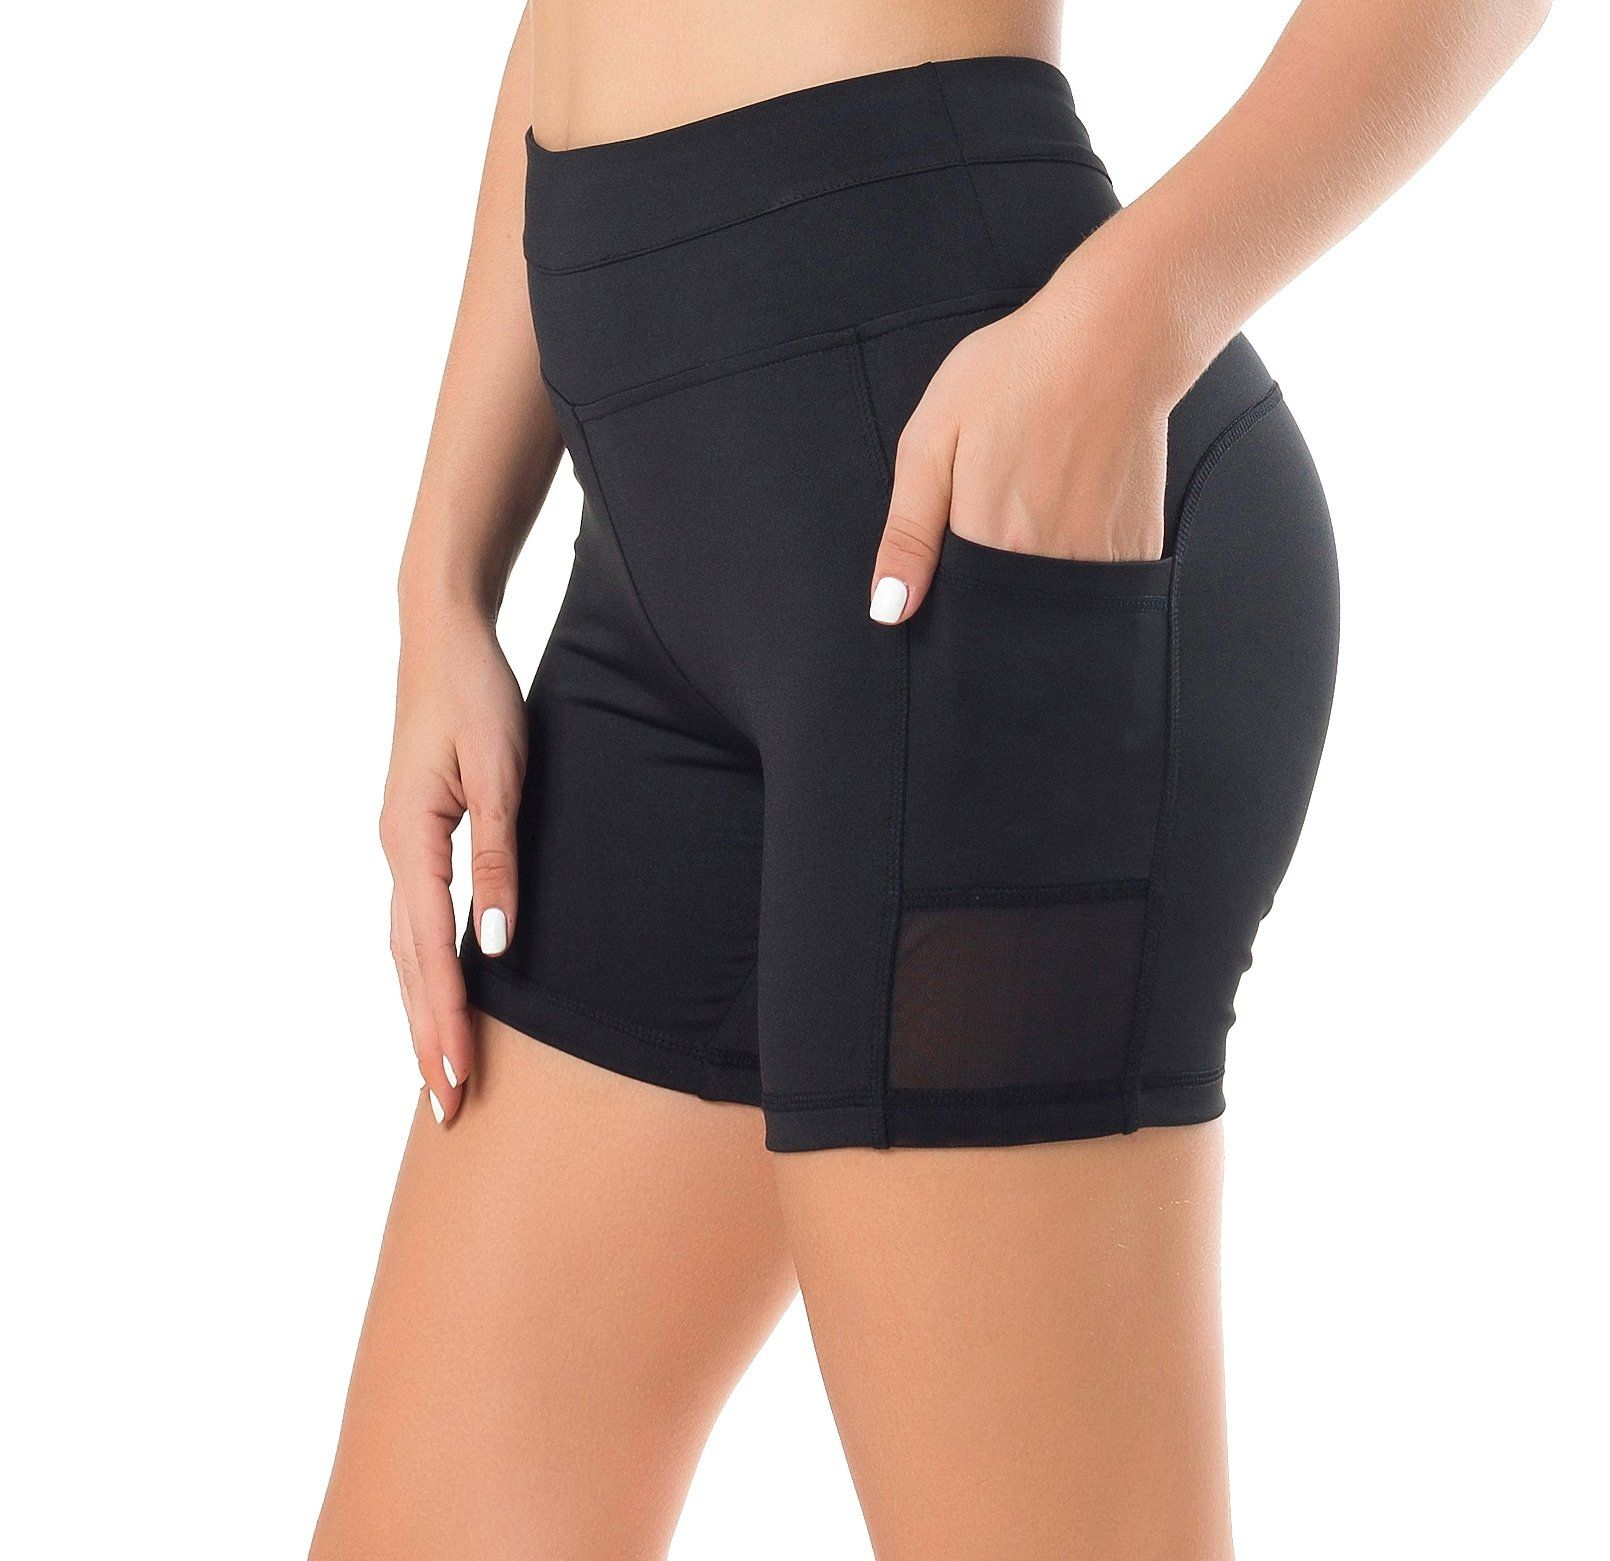 cdbda7d42b830 Sudawave Womens Mesh shorts Workout Yoga Pants Running With Side Pocket  (Large, Black). These shorts equipped with mesh inserts and side pocket.